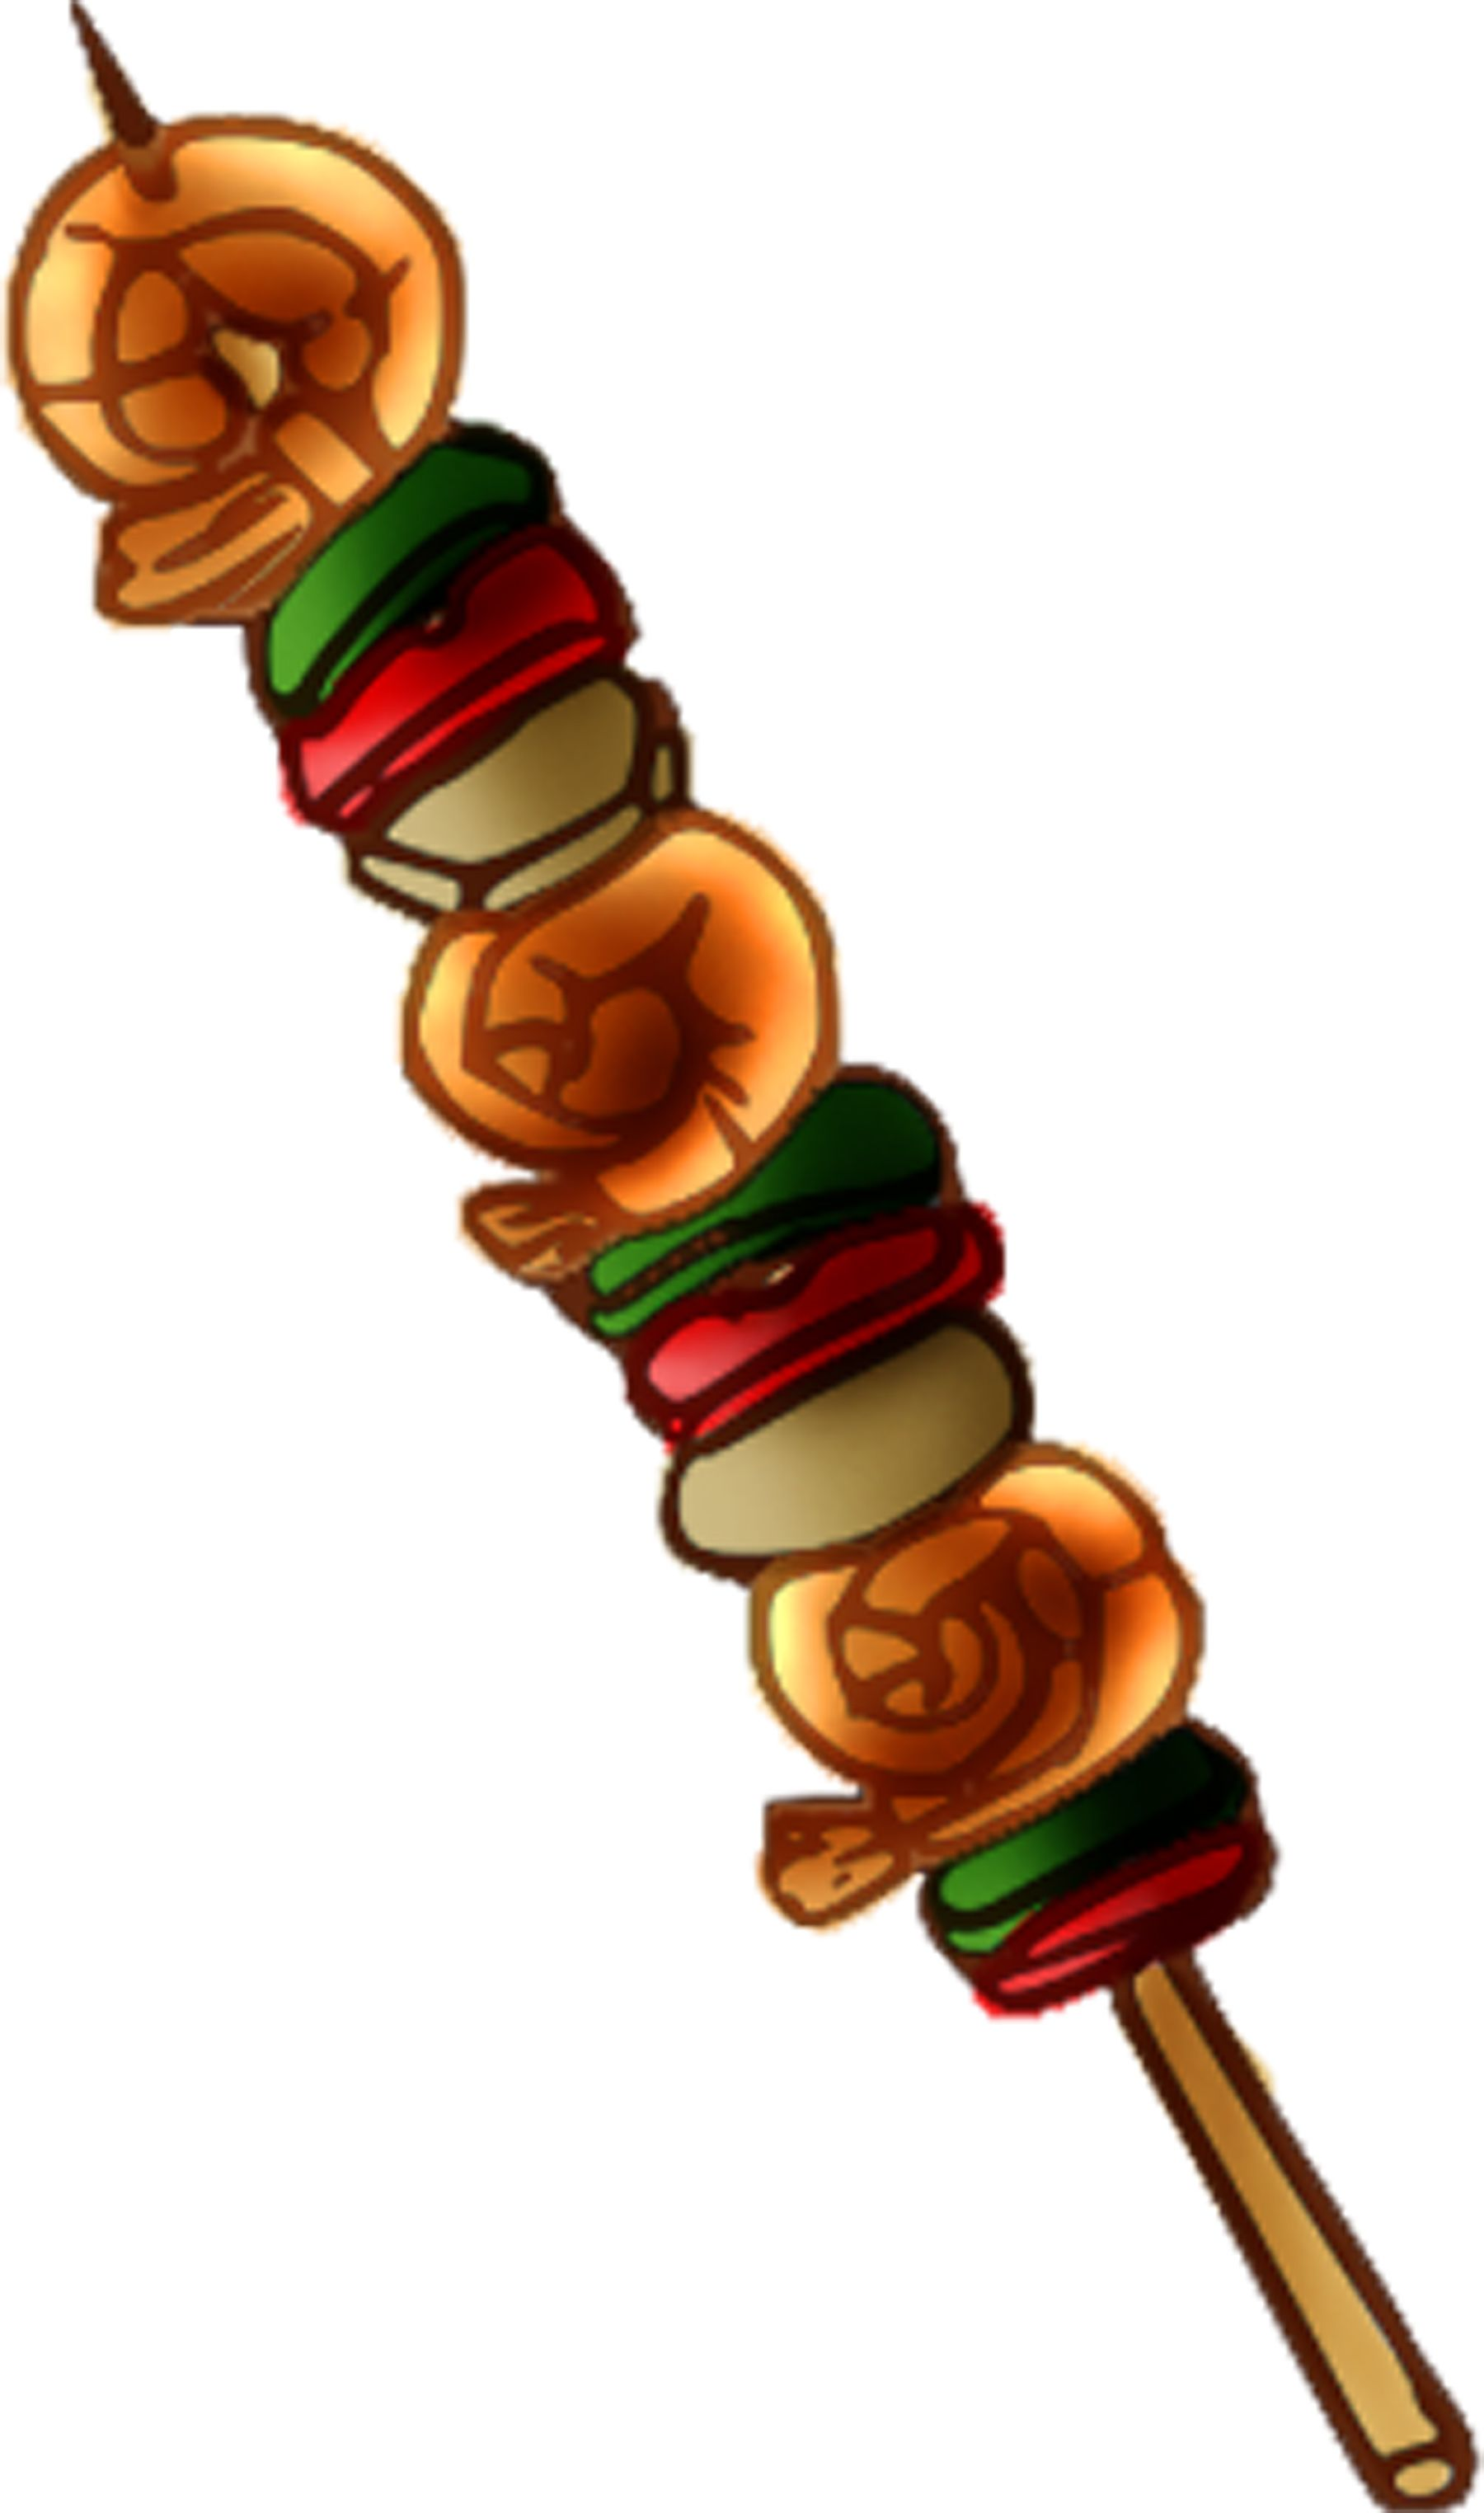 free clip art many to choose from more added regularly clip art rh pinterest com Kabob Border Pepper Clip Art